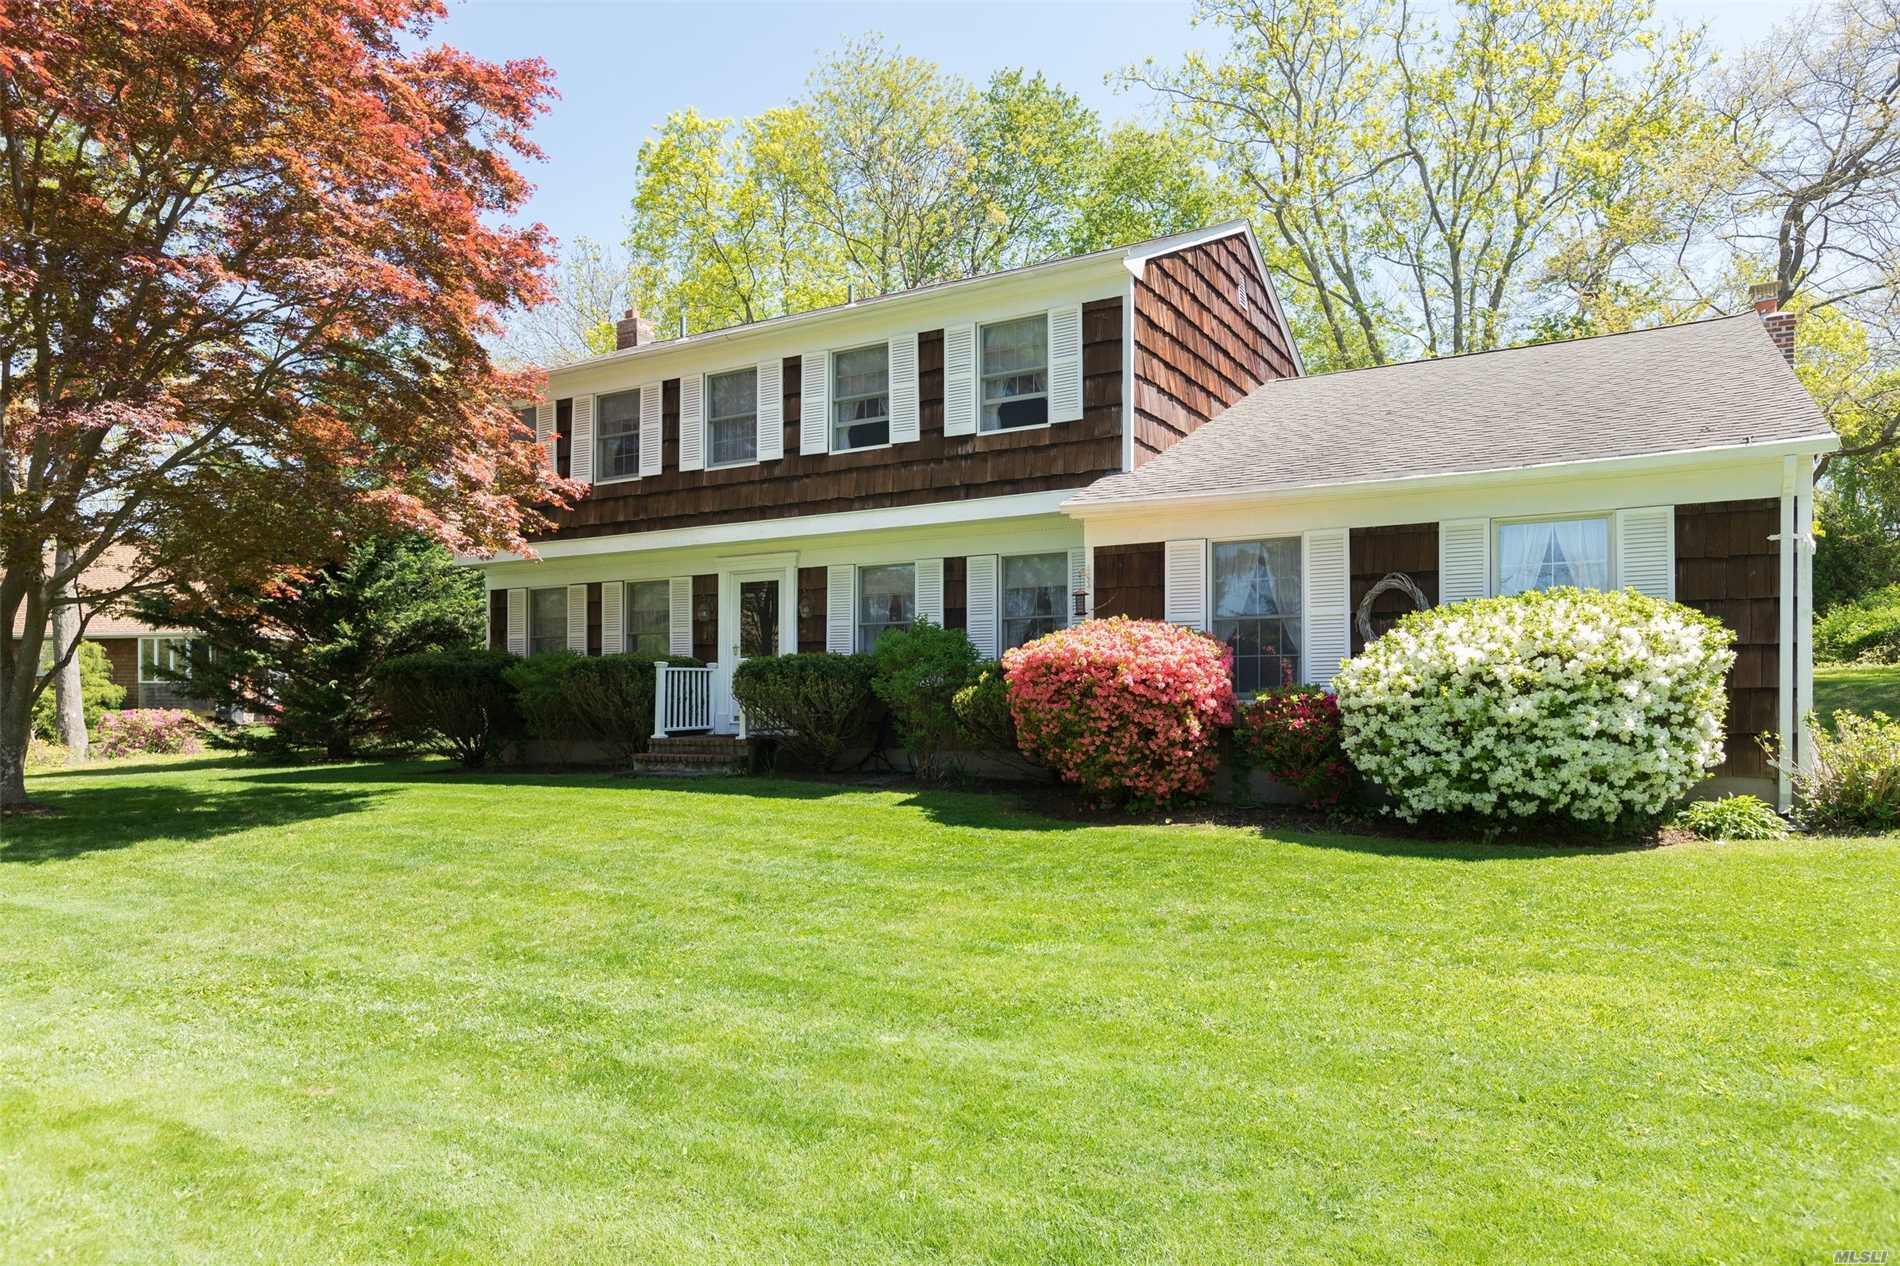 This lovely home sits in a park like setting with mature landscaping offering privacy and lush gardens. Impeccably maintained with wood floors throughout, great living space - perfect for entertaining with large sun filled family room w/ fireplace, formal dining room, oversized living room, four bedrooms with a master ensuite, 2.5 baths, E-I-K. Short distance to Nassau Pt Beach, Pequash, Vineyards, Fine Dining, all things North Fork.